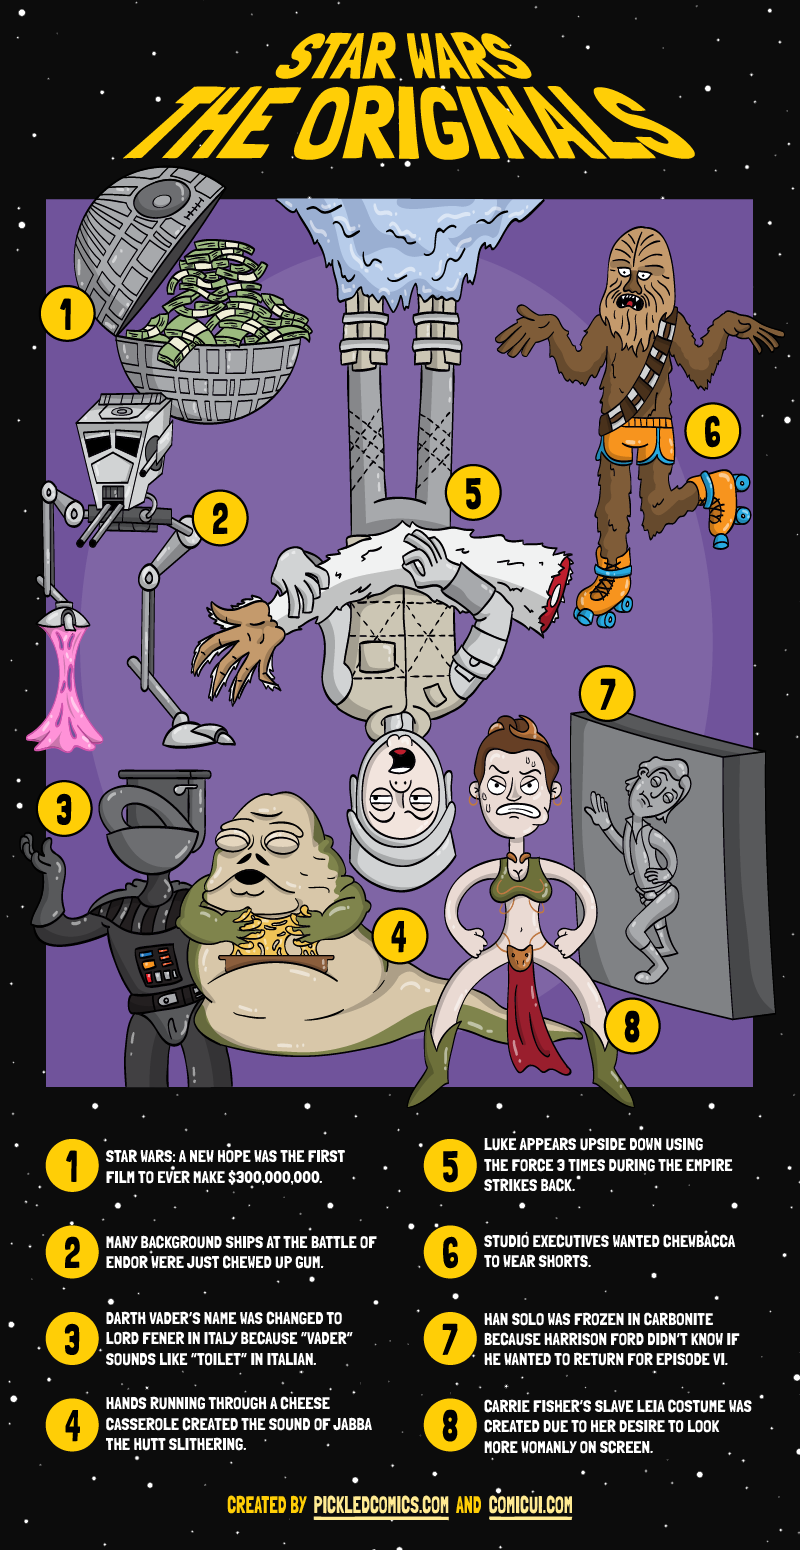 Star Wars The Originals. These Are The Star Wars Facts You're Looking For.